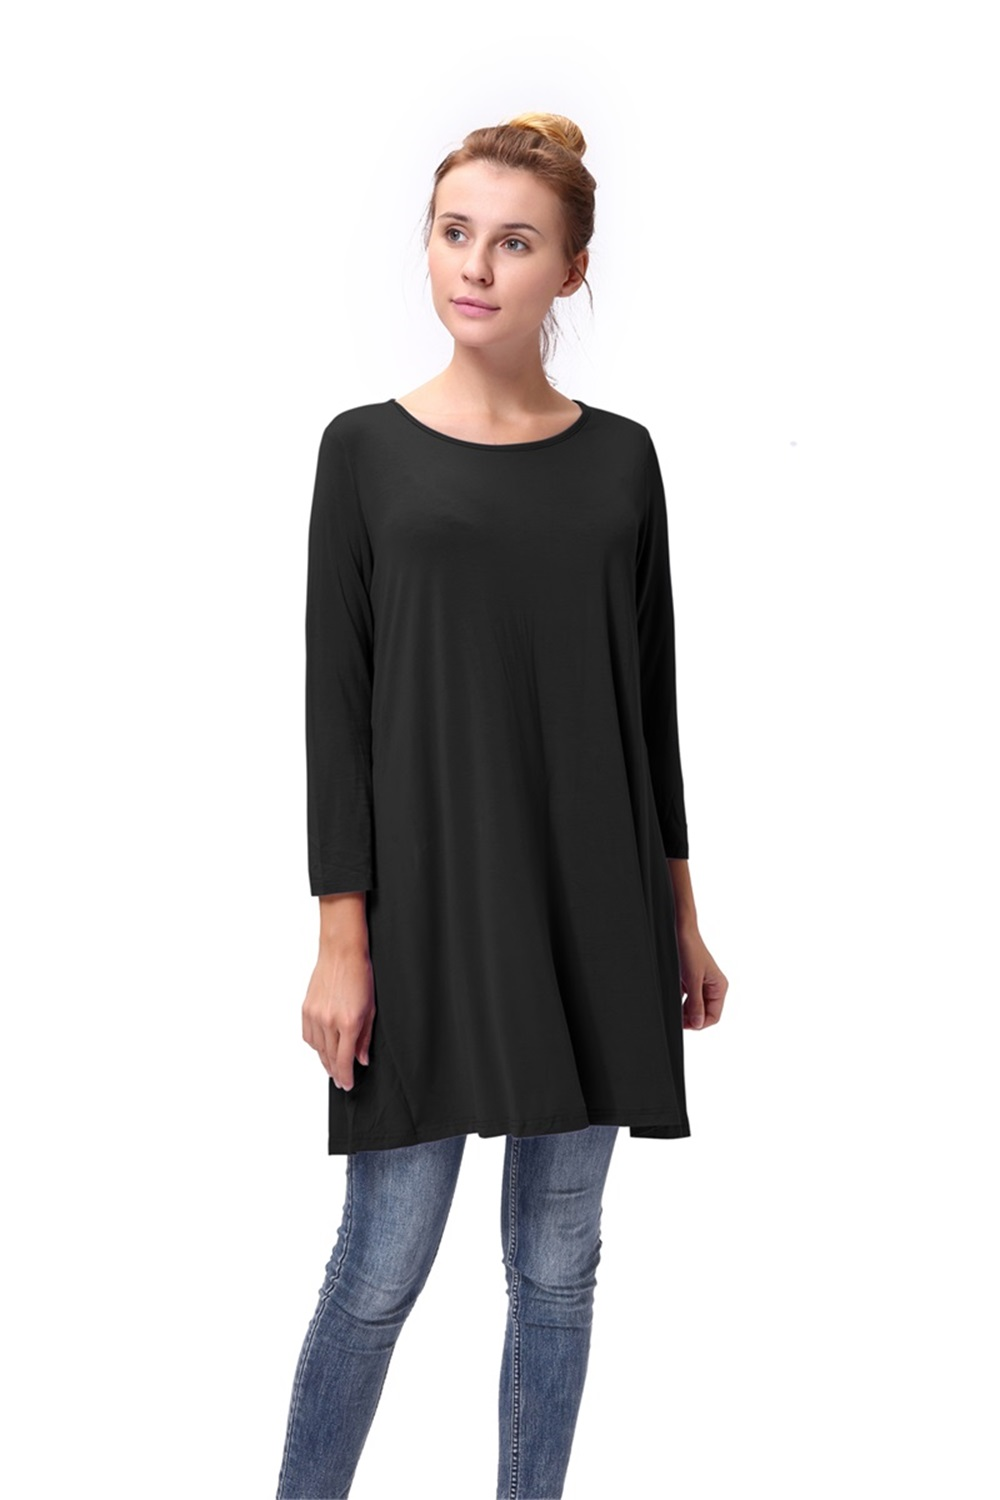 Women-039-s-Long-Tunic-Top-3-4-Sleeve-Dolman-Boat-Neck-USA-Dress-S-M-L-1X-2X-3X-PLUS thumbnail 12